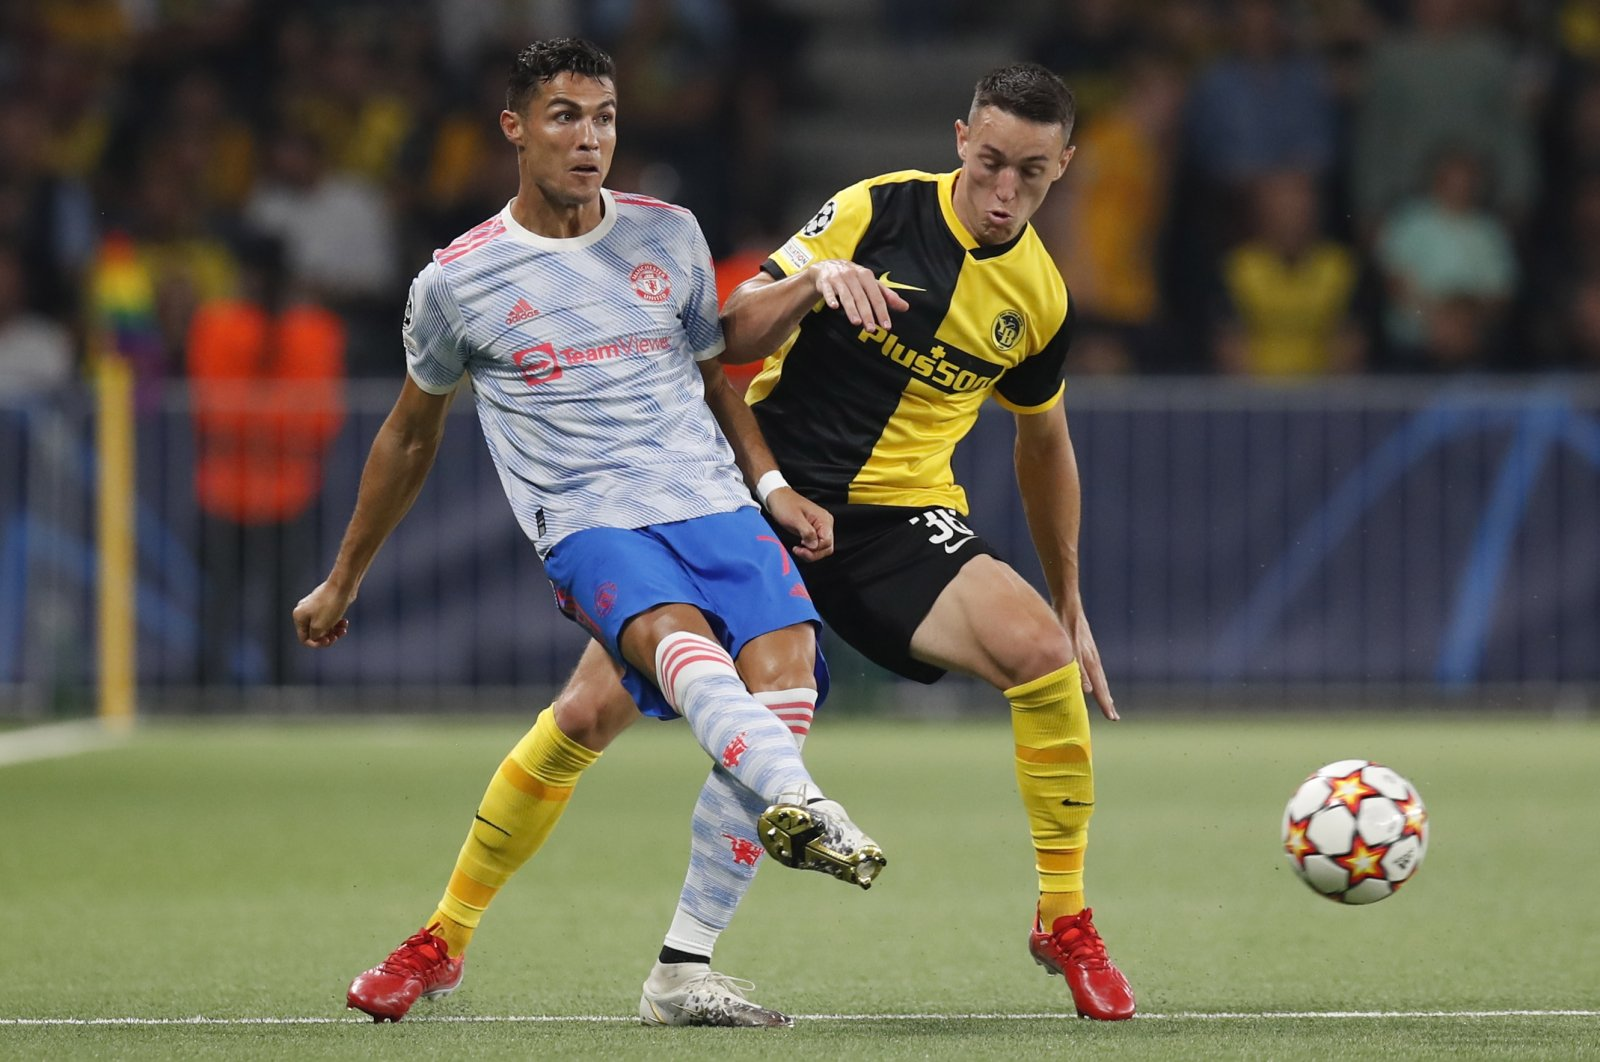 Young Boys' Silvan Hefti (R) and Manchester's Cristiano Ronaldo in action during their Champions League Group F match at the Wankdorf stadium in Bern, Switzerland, Sept. 14, 2021. (EPA Photo)